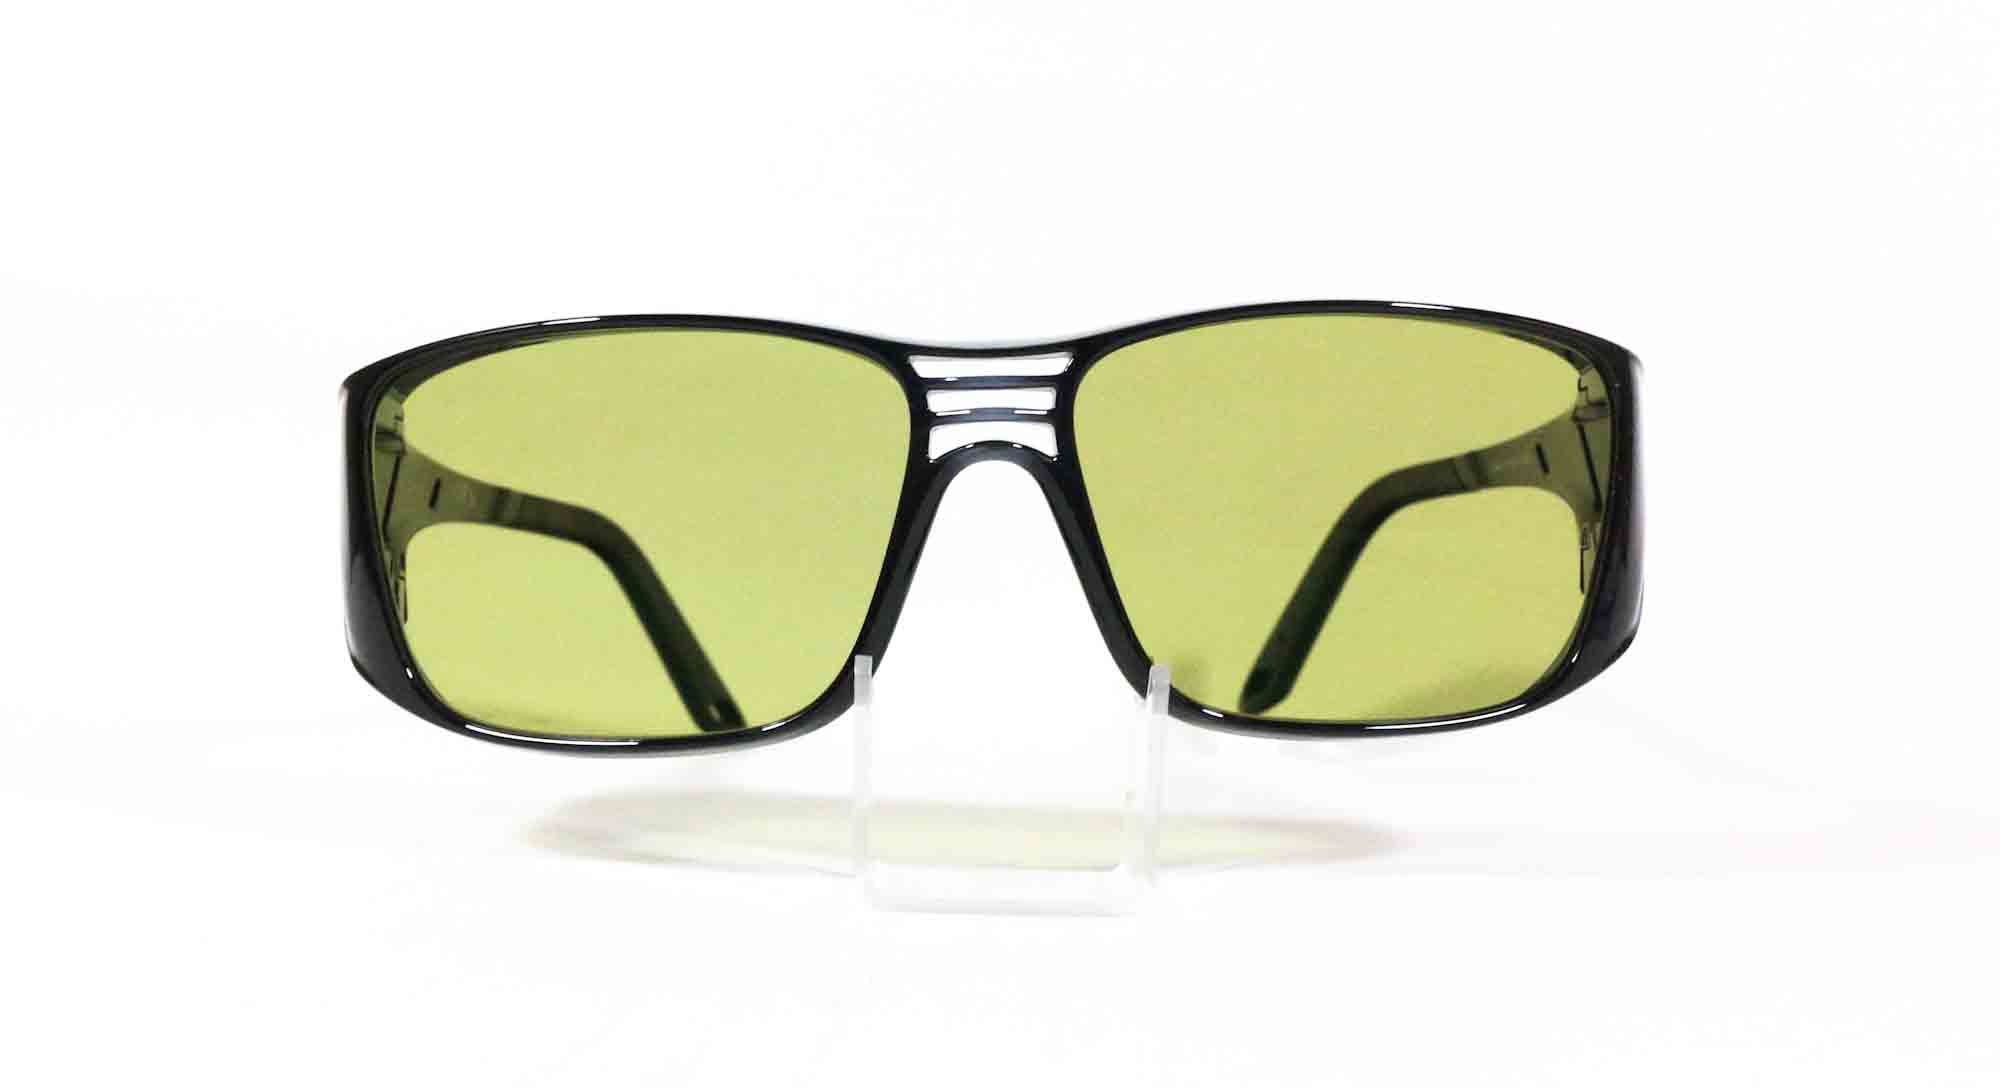 Zeque Polarised Fishing Sunglasses Opa F-1905 Ease Green / Gray (8614)